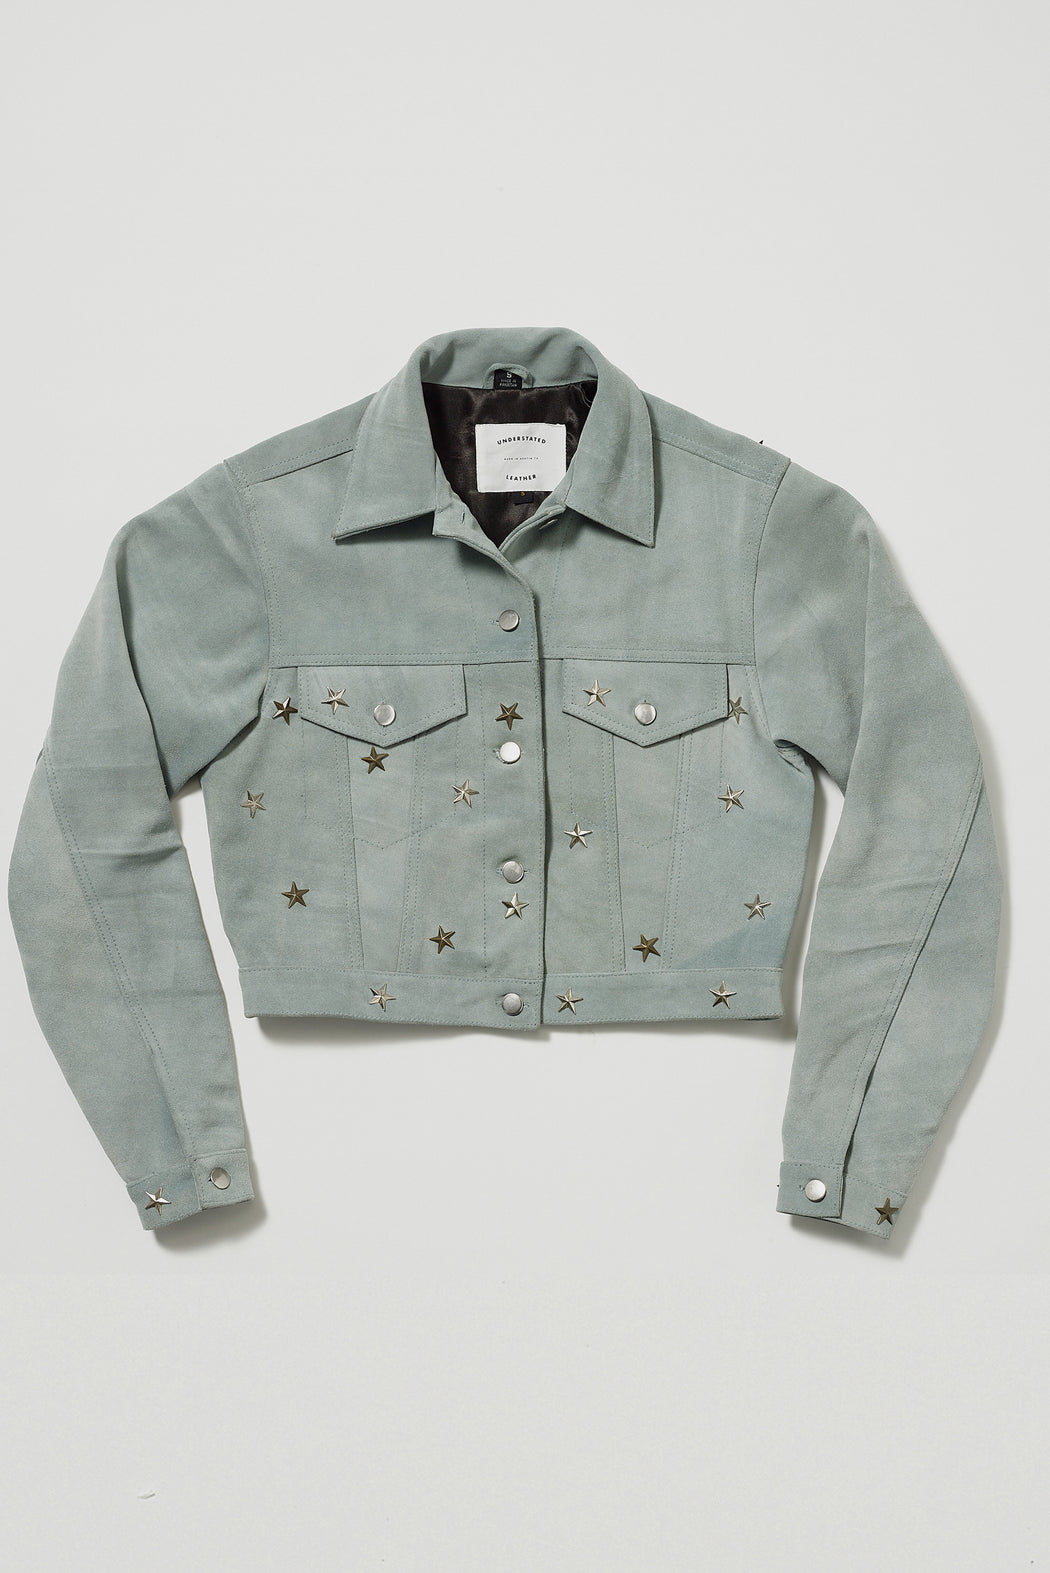 LUCKY STARS SUEDE JACKET